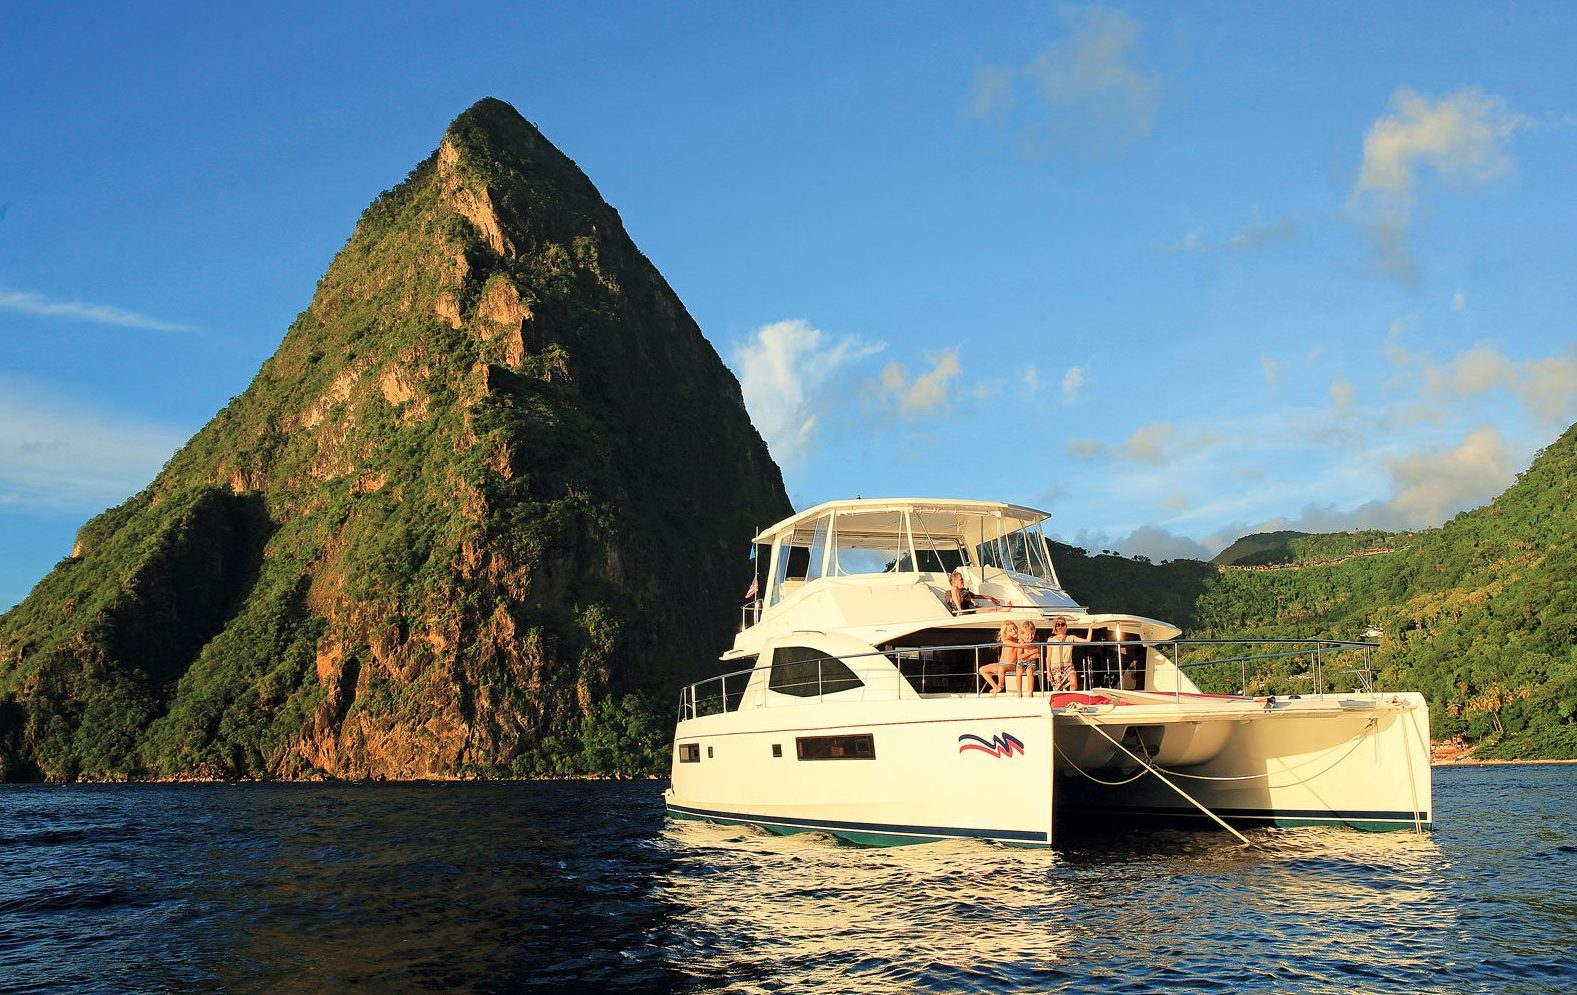 A young family enjoy the space and stability of a power cat at anchor in the shadow of the Pitons, St. Lucia. Photo courtesy of The Moorings